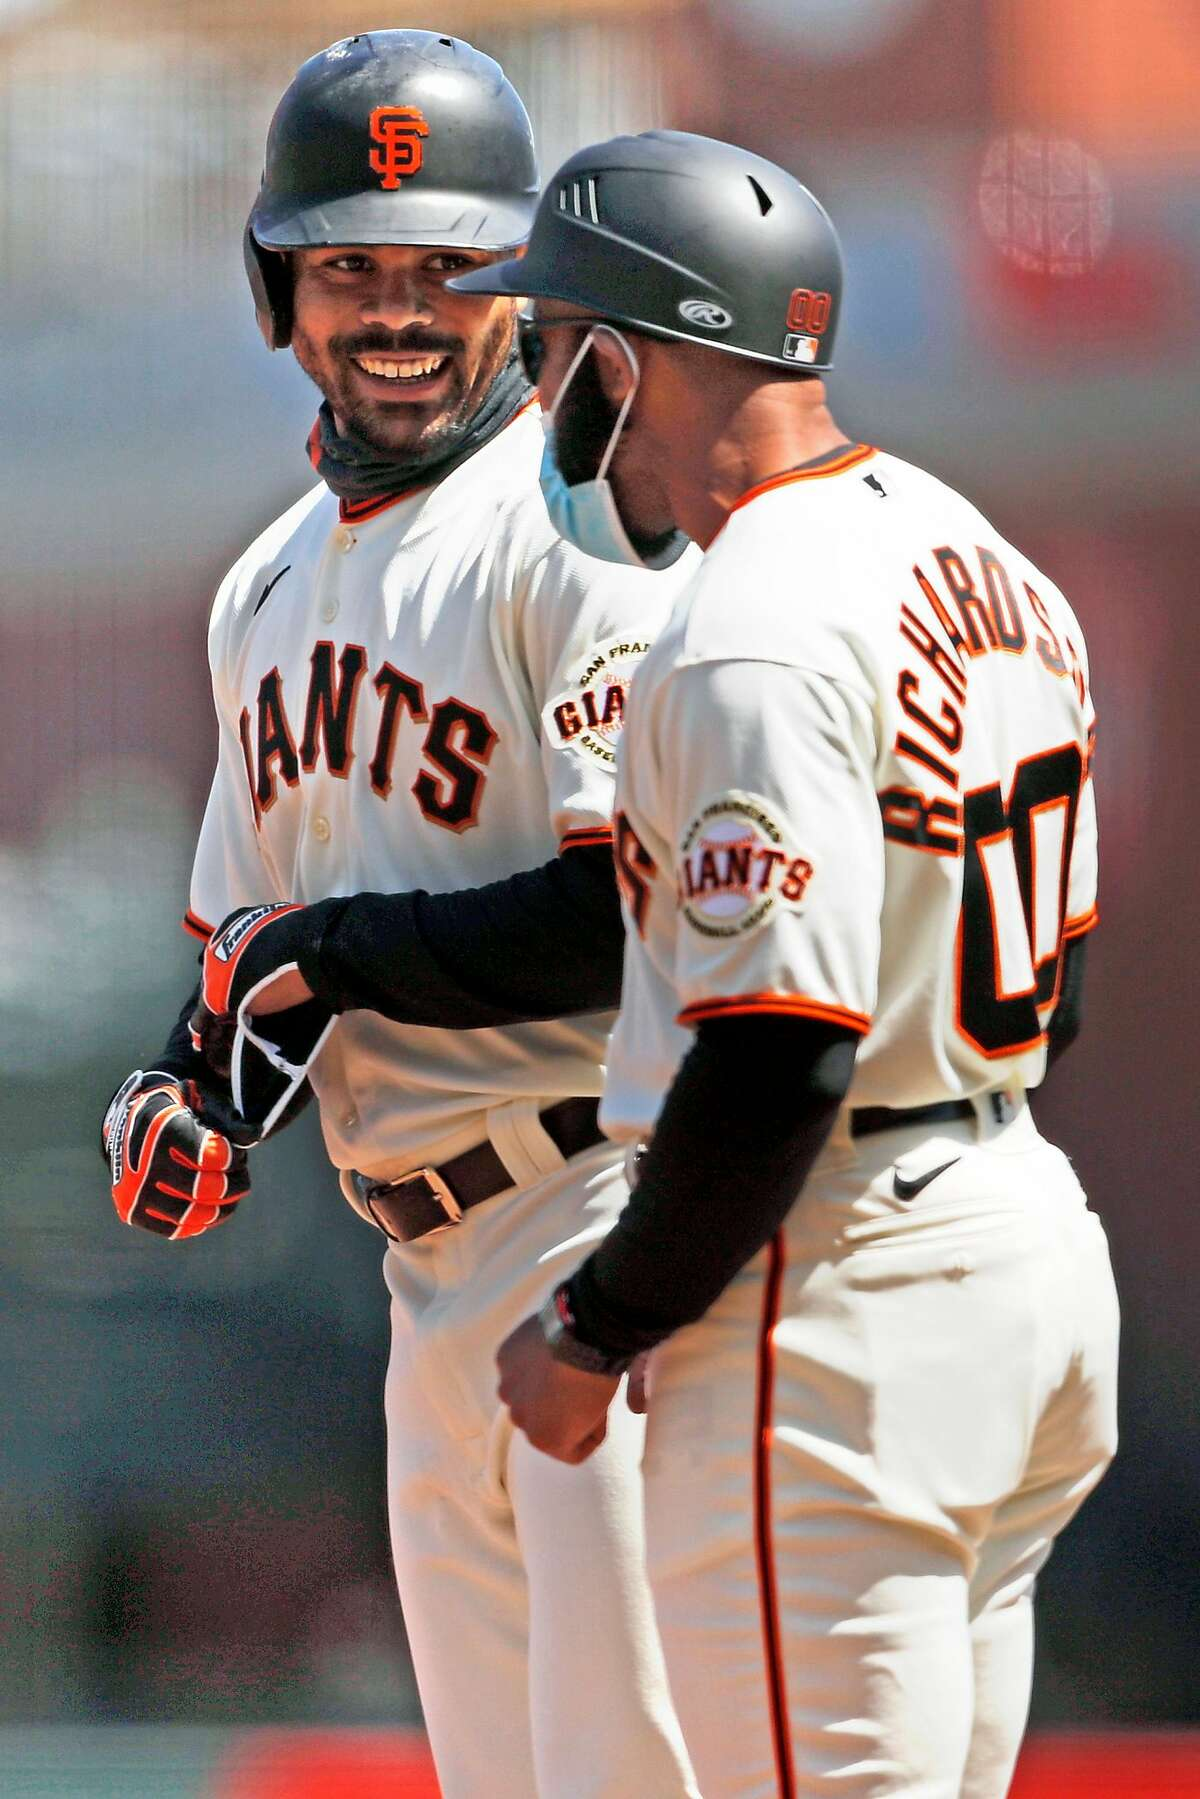 San Francisco Giants' LaMonte Wade, Jr. smiles at first base coach Antoan Richardson after Wade, Jr. singled against Colorado Rockies in 2nd inning during MLB game at Oracle Park in San Francisco, Calif., on Sunday, April 11, 2021.